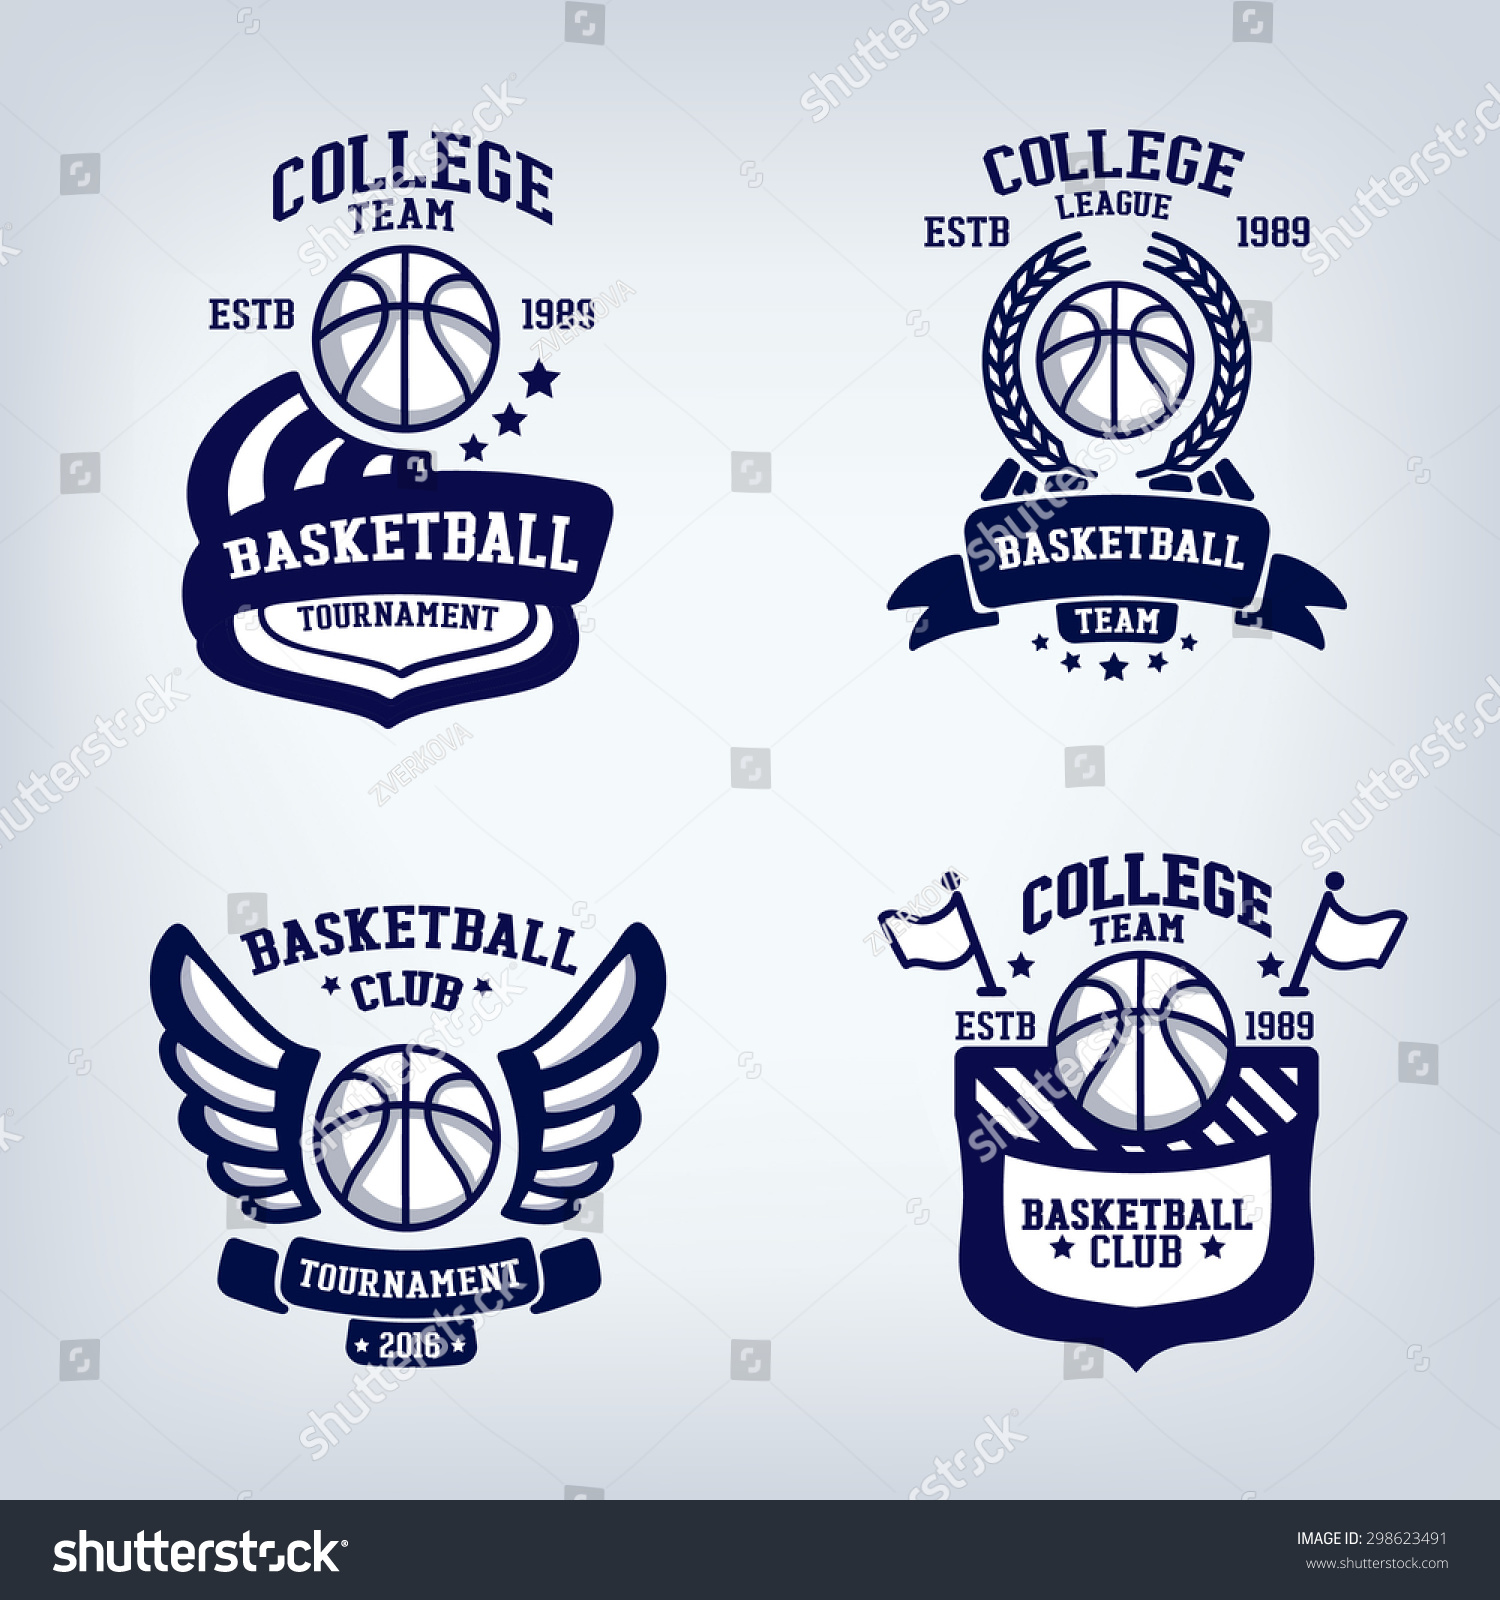 basketball club emblem college league logo stock vector 298623491 shutterstock. Black Bedroom Furniture Sets. Home Design Ideas